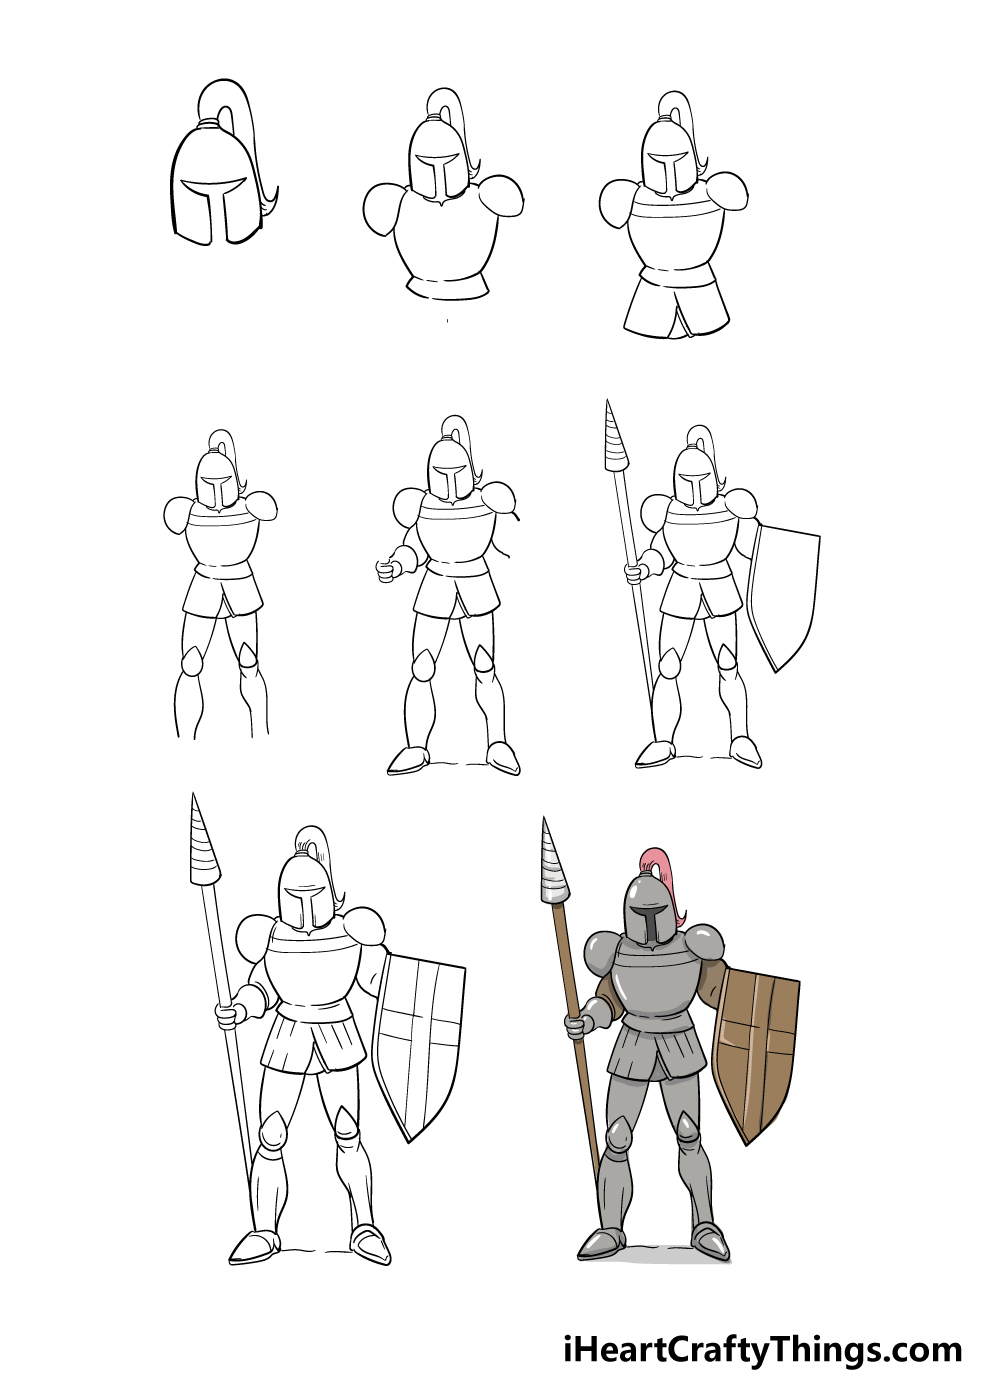 how to draw knight in 8 steps